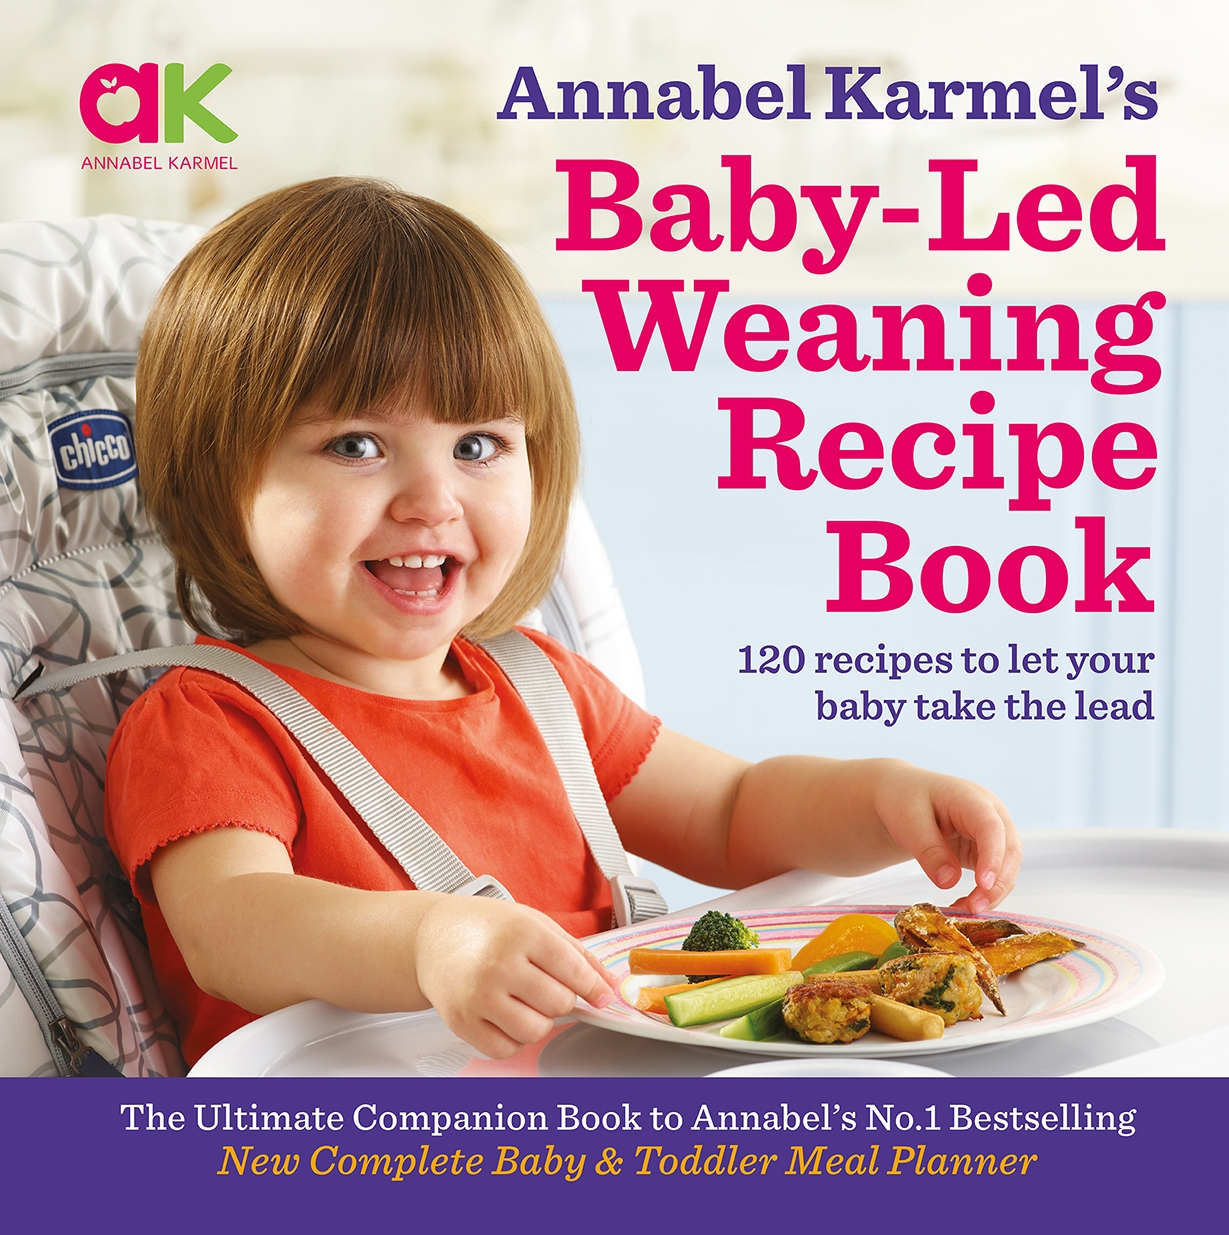 Baby led weaning recipe book by annabel karmel penguin books australia baby led weaning recipe book forumfinder Gallery